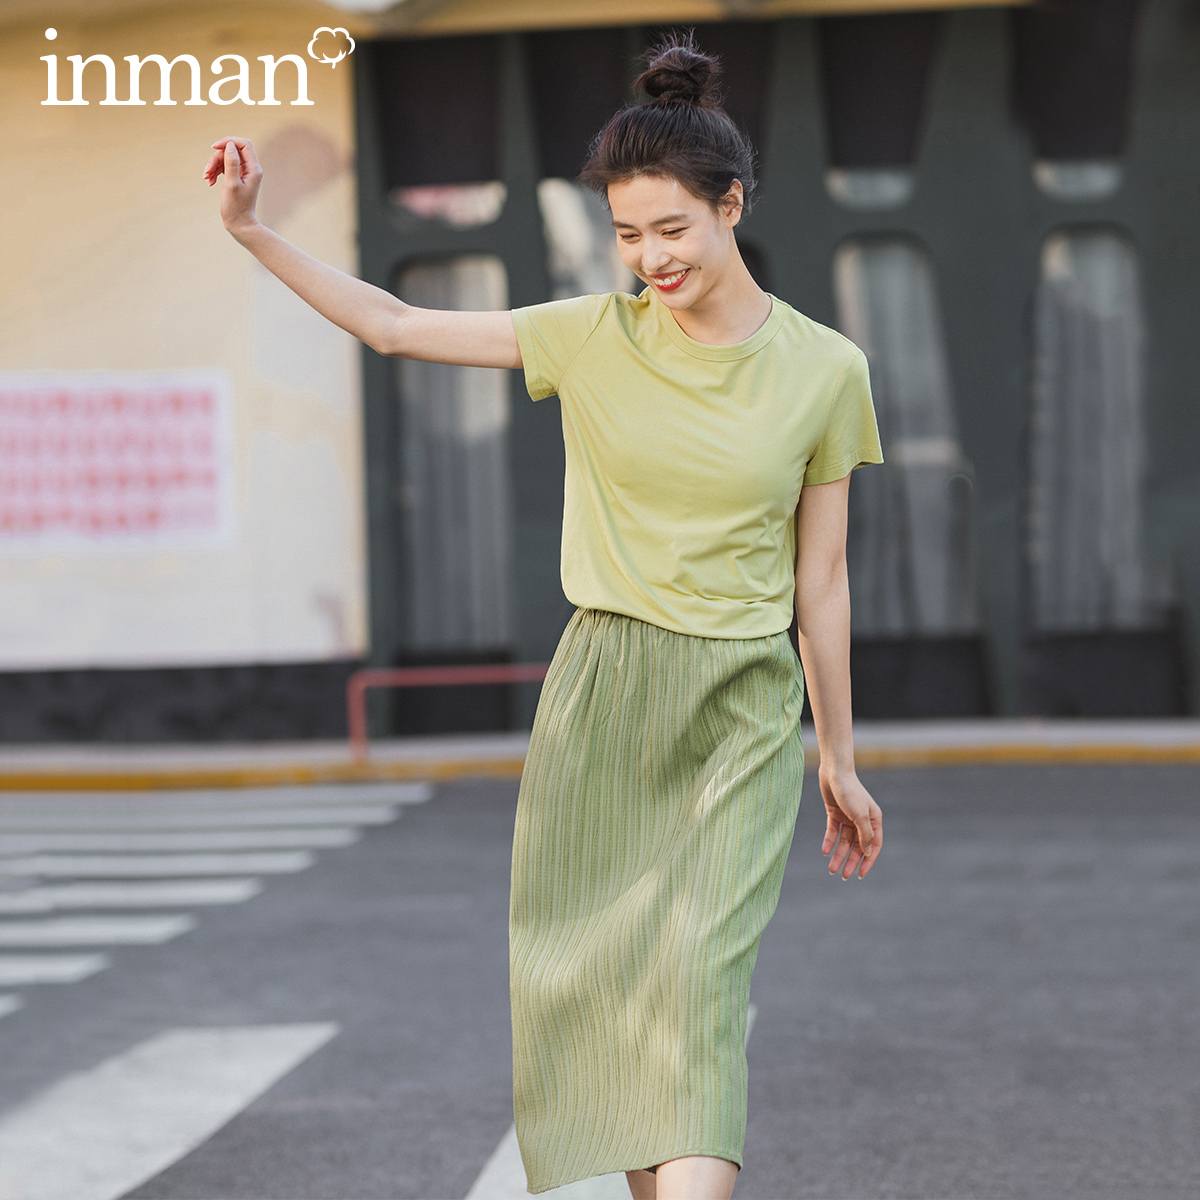 INMAN 2020 Summer New Arrival Round Collar Short Sleeve T-shirt With Drape Leisure Skirt Two-piece Suit